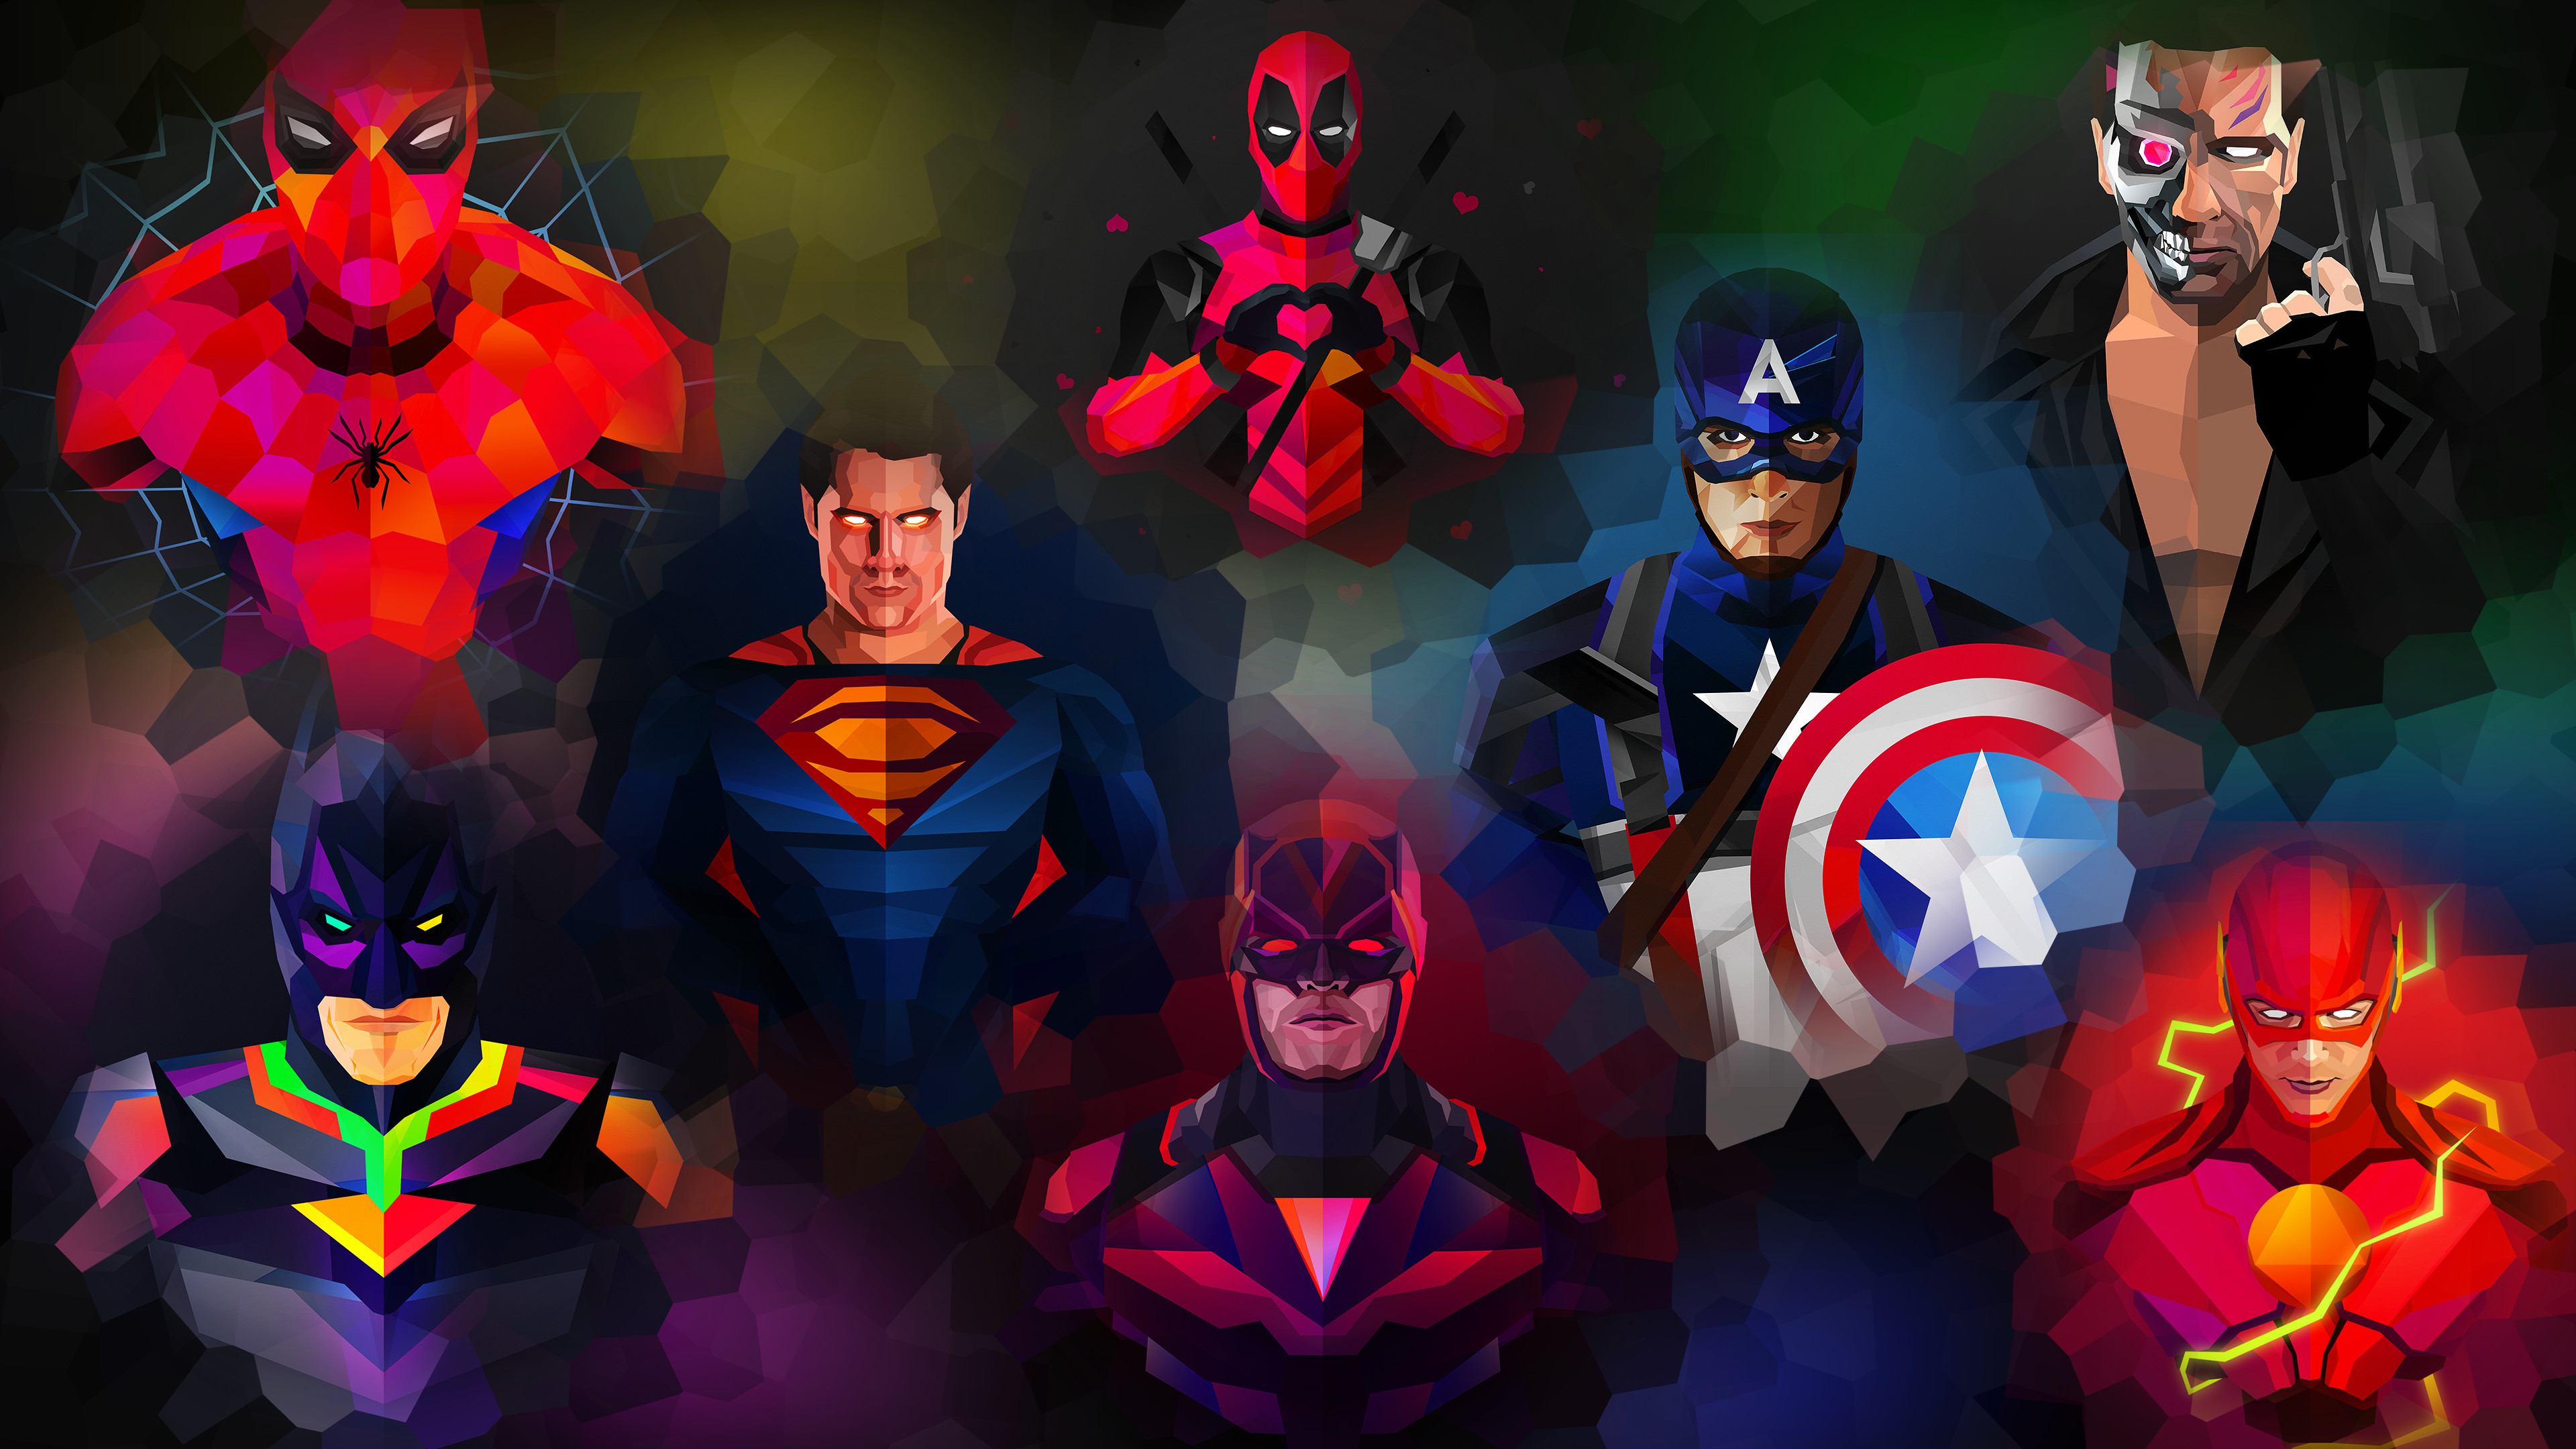 marvel and dc low poly art 1541294334 - Marvel And Dc Low Poly Art - superheroes wallpapers, marvel wallpapers, hd-wallpapers, dc comics wallpapers, 4k-wallpapers